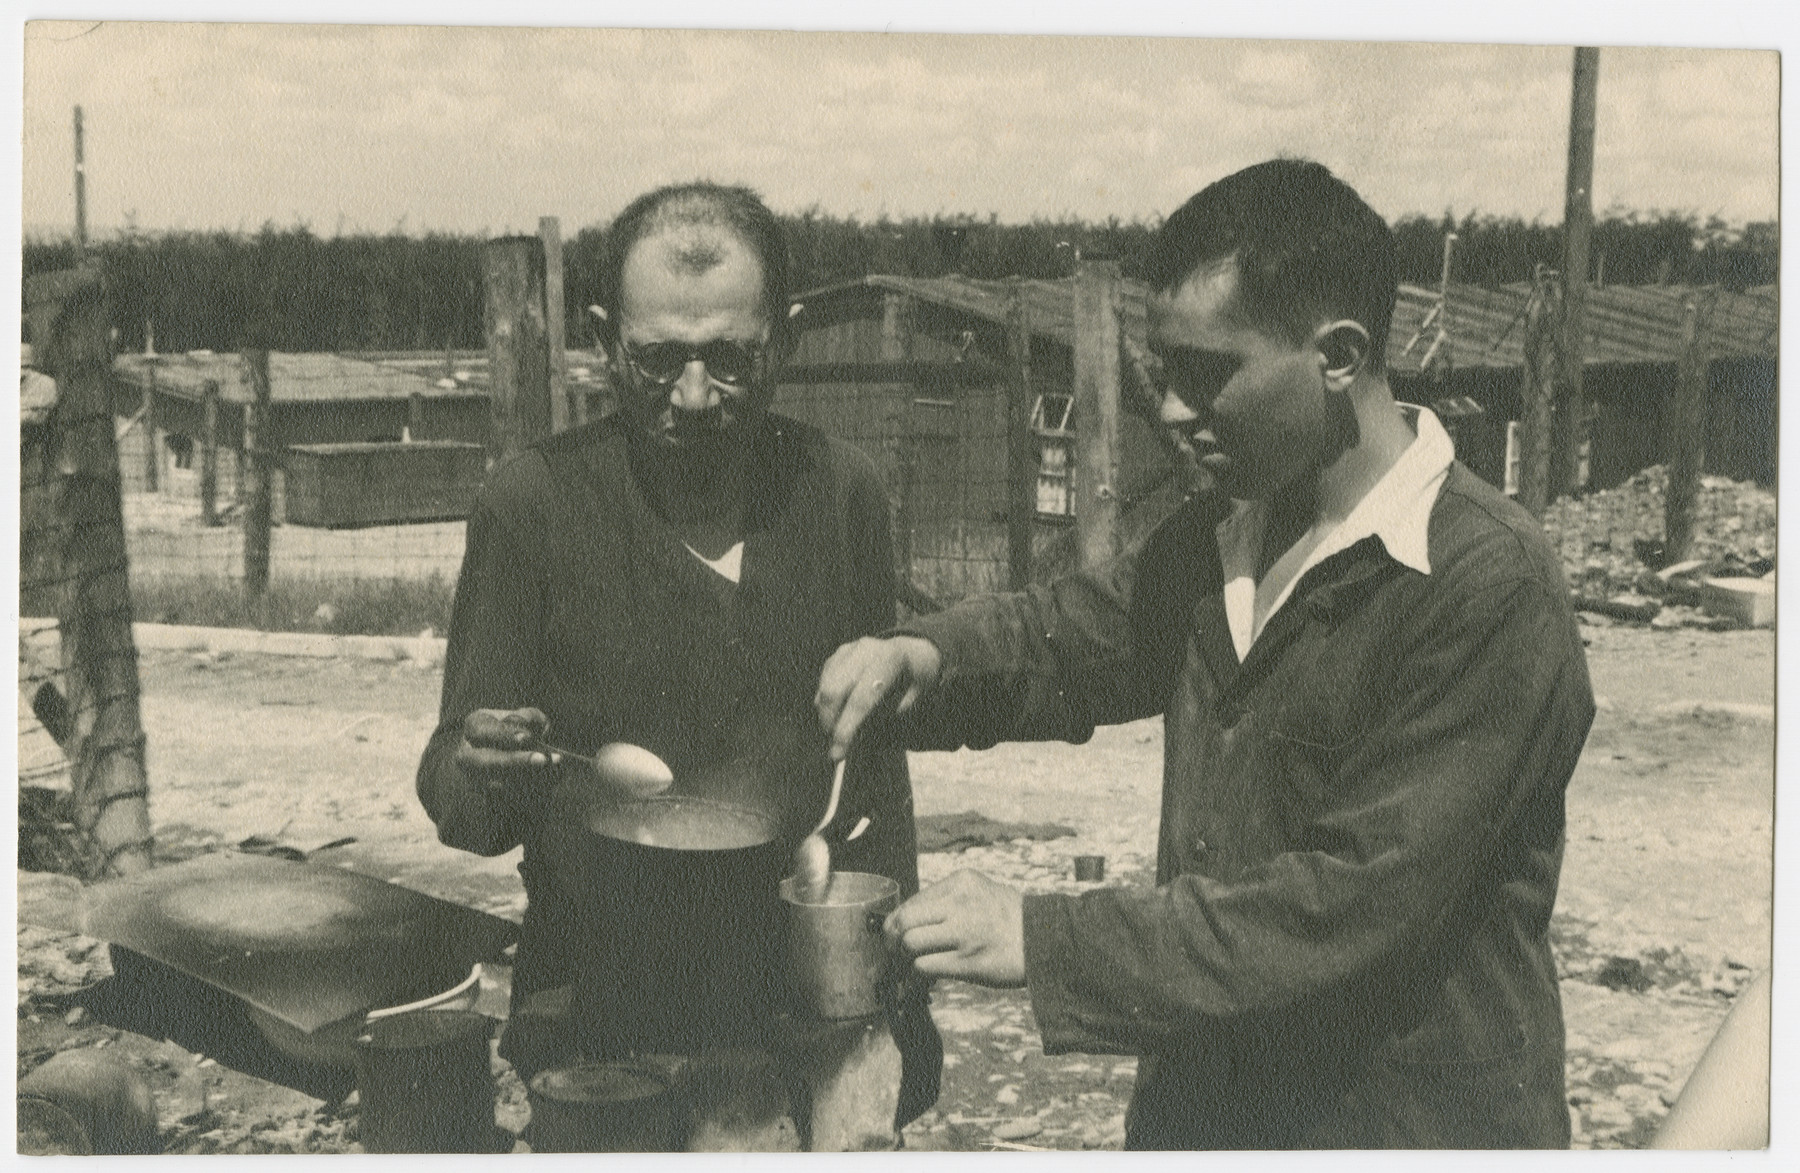 Two survivors of either Ohrdruf or Buchenwald concentration camp prepare a light meal after liberation.